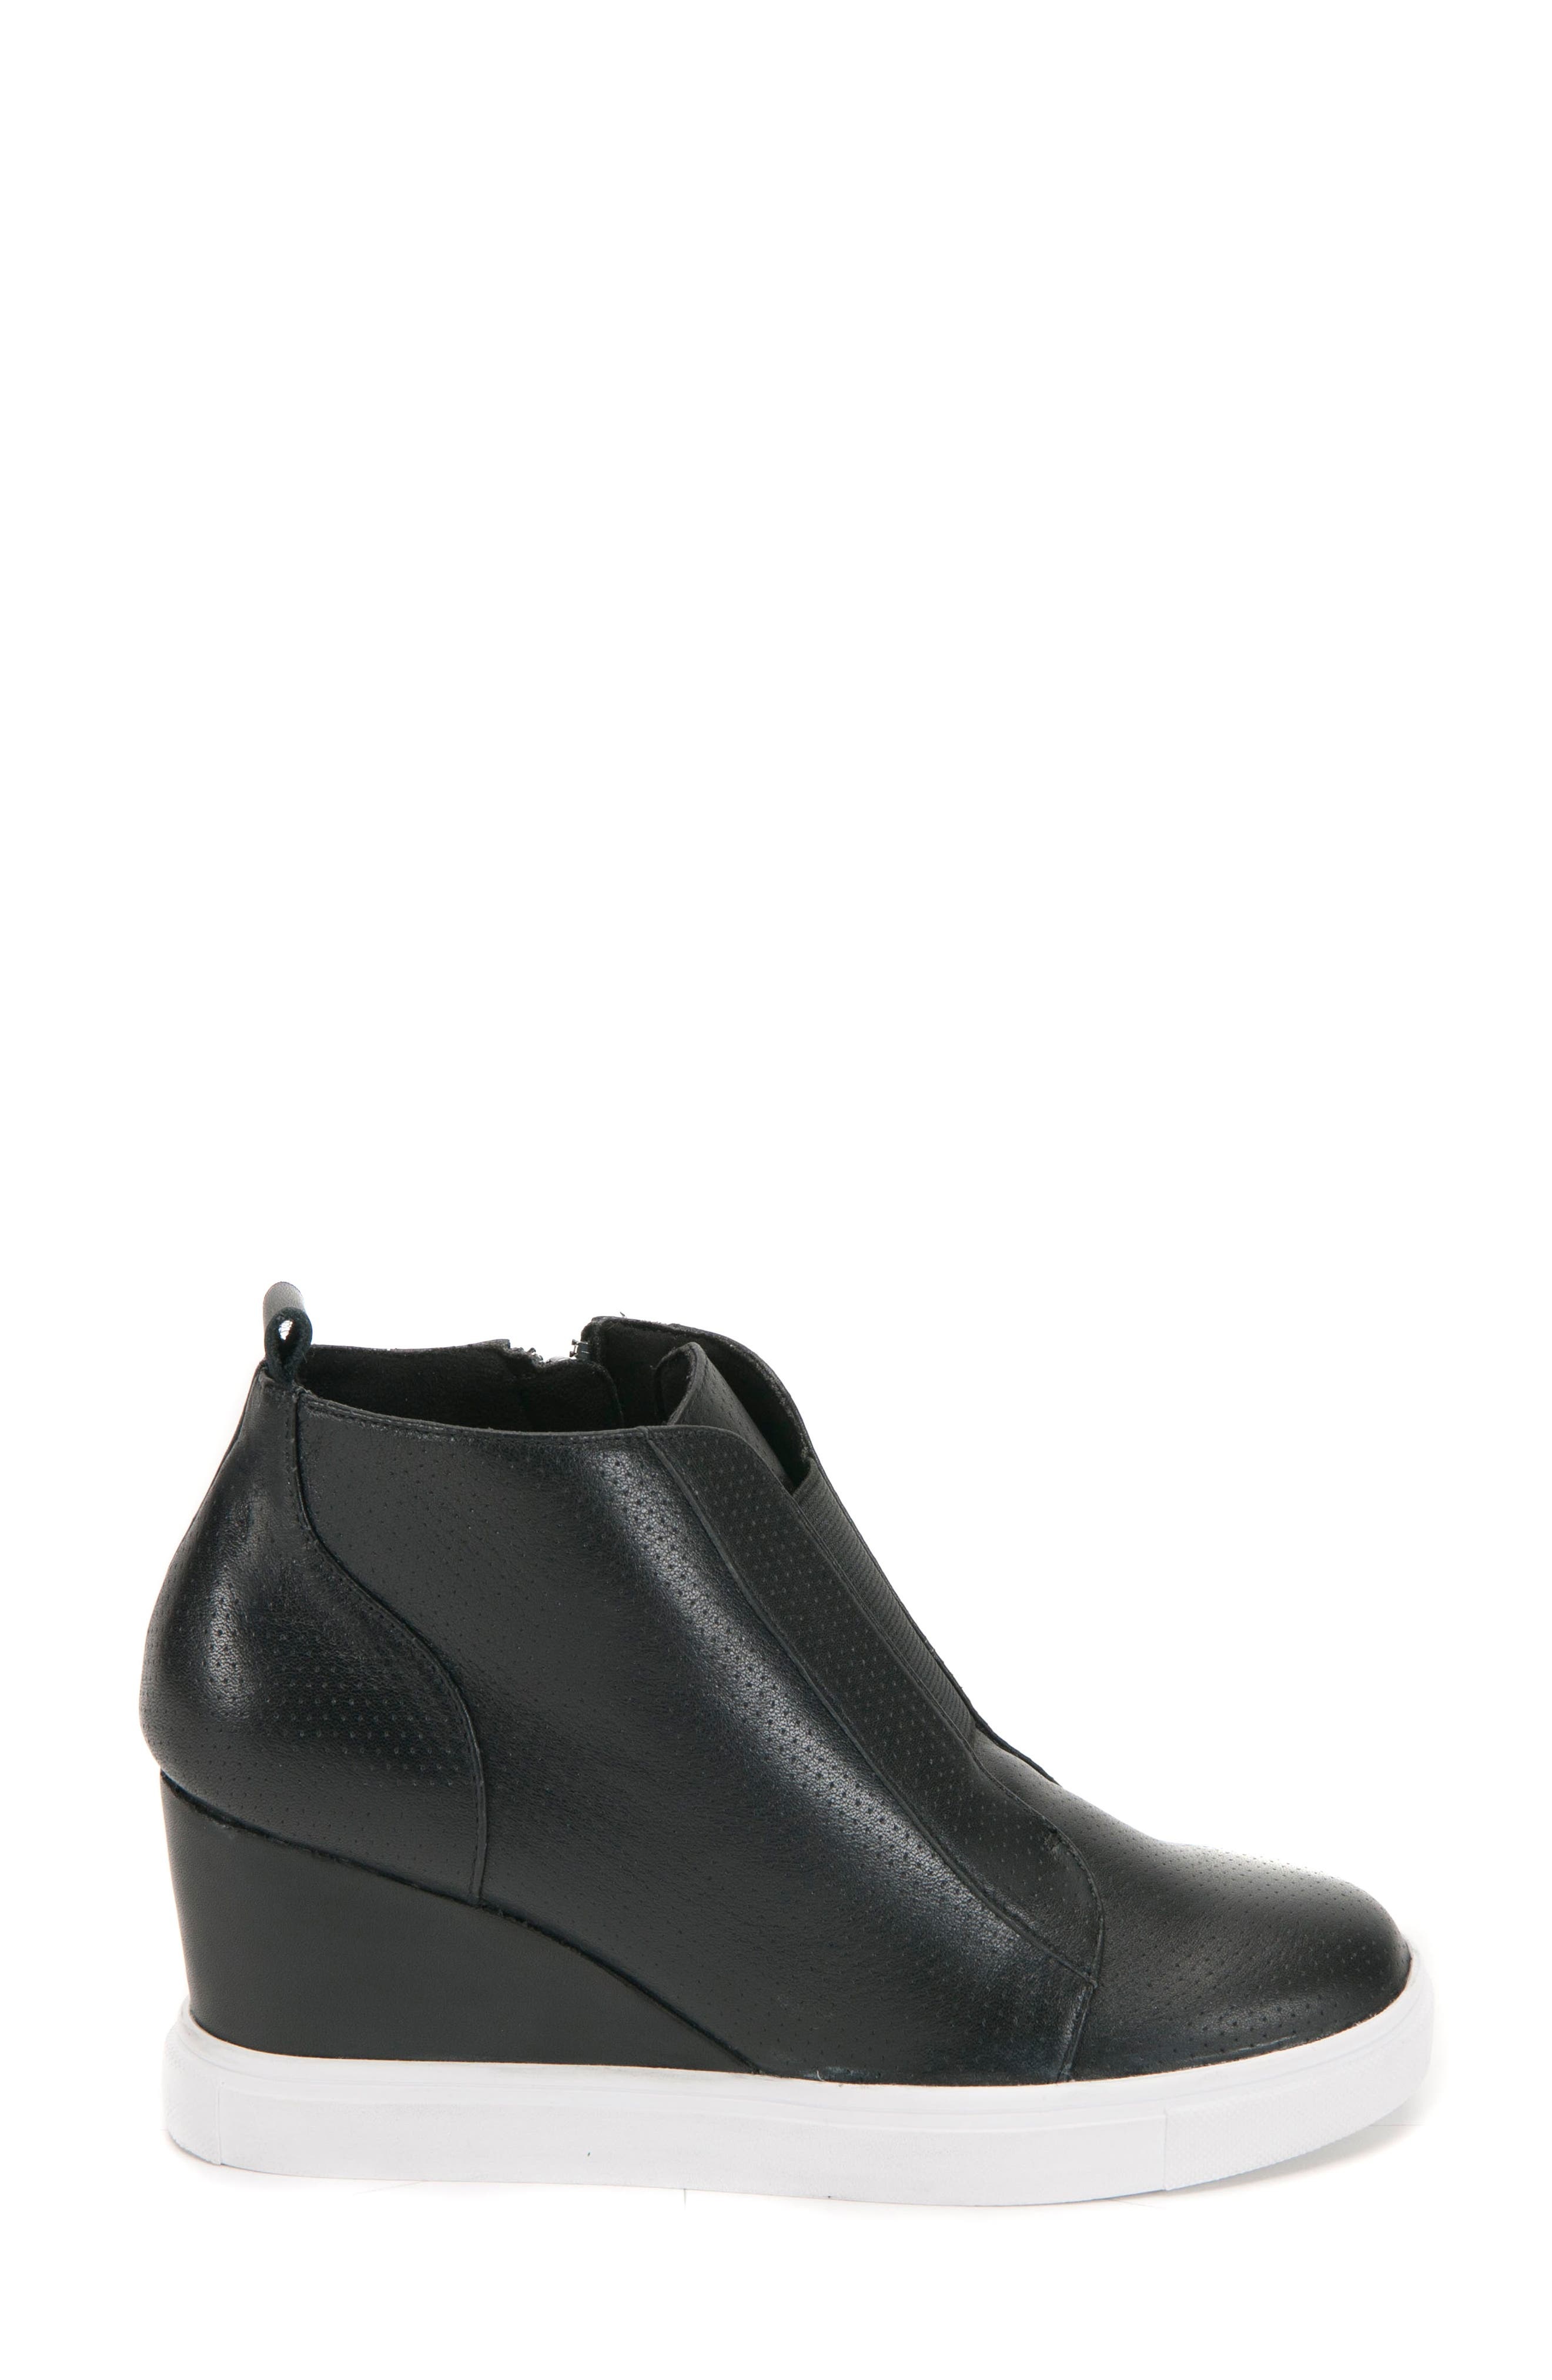 Gatsby Waterproof Wedge Bootie,                             Alternate thumbnail 3, color,                             BLACK LEATHER